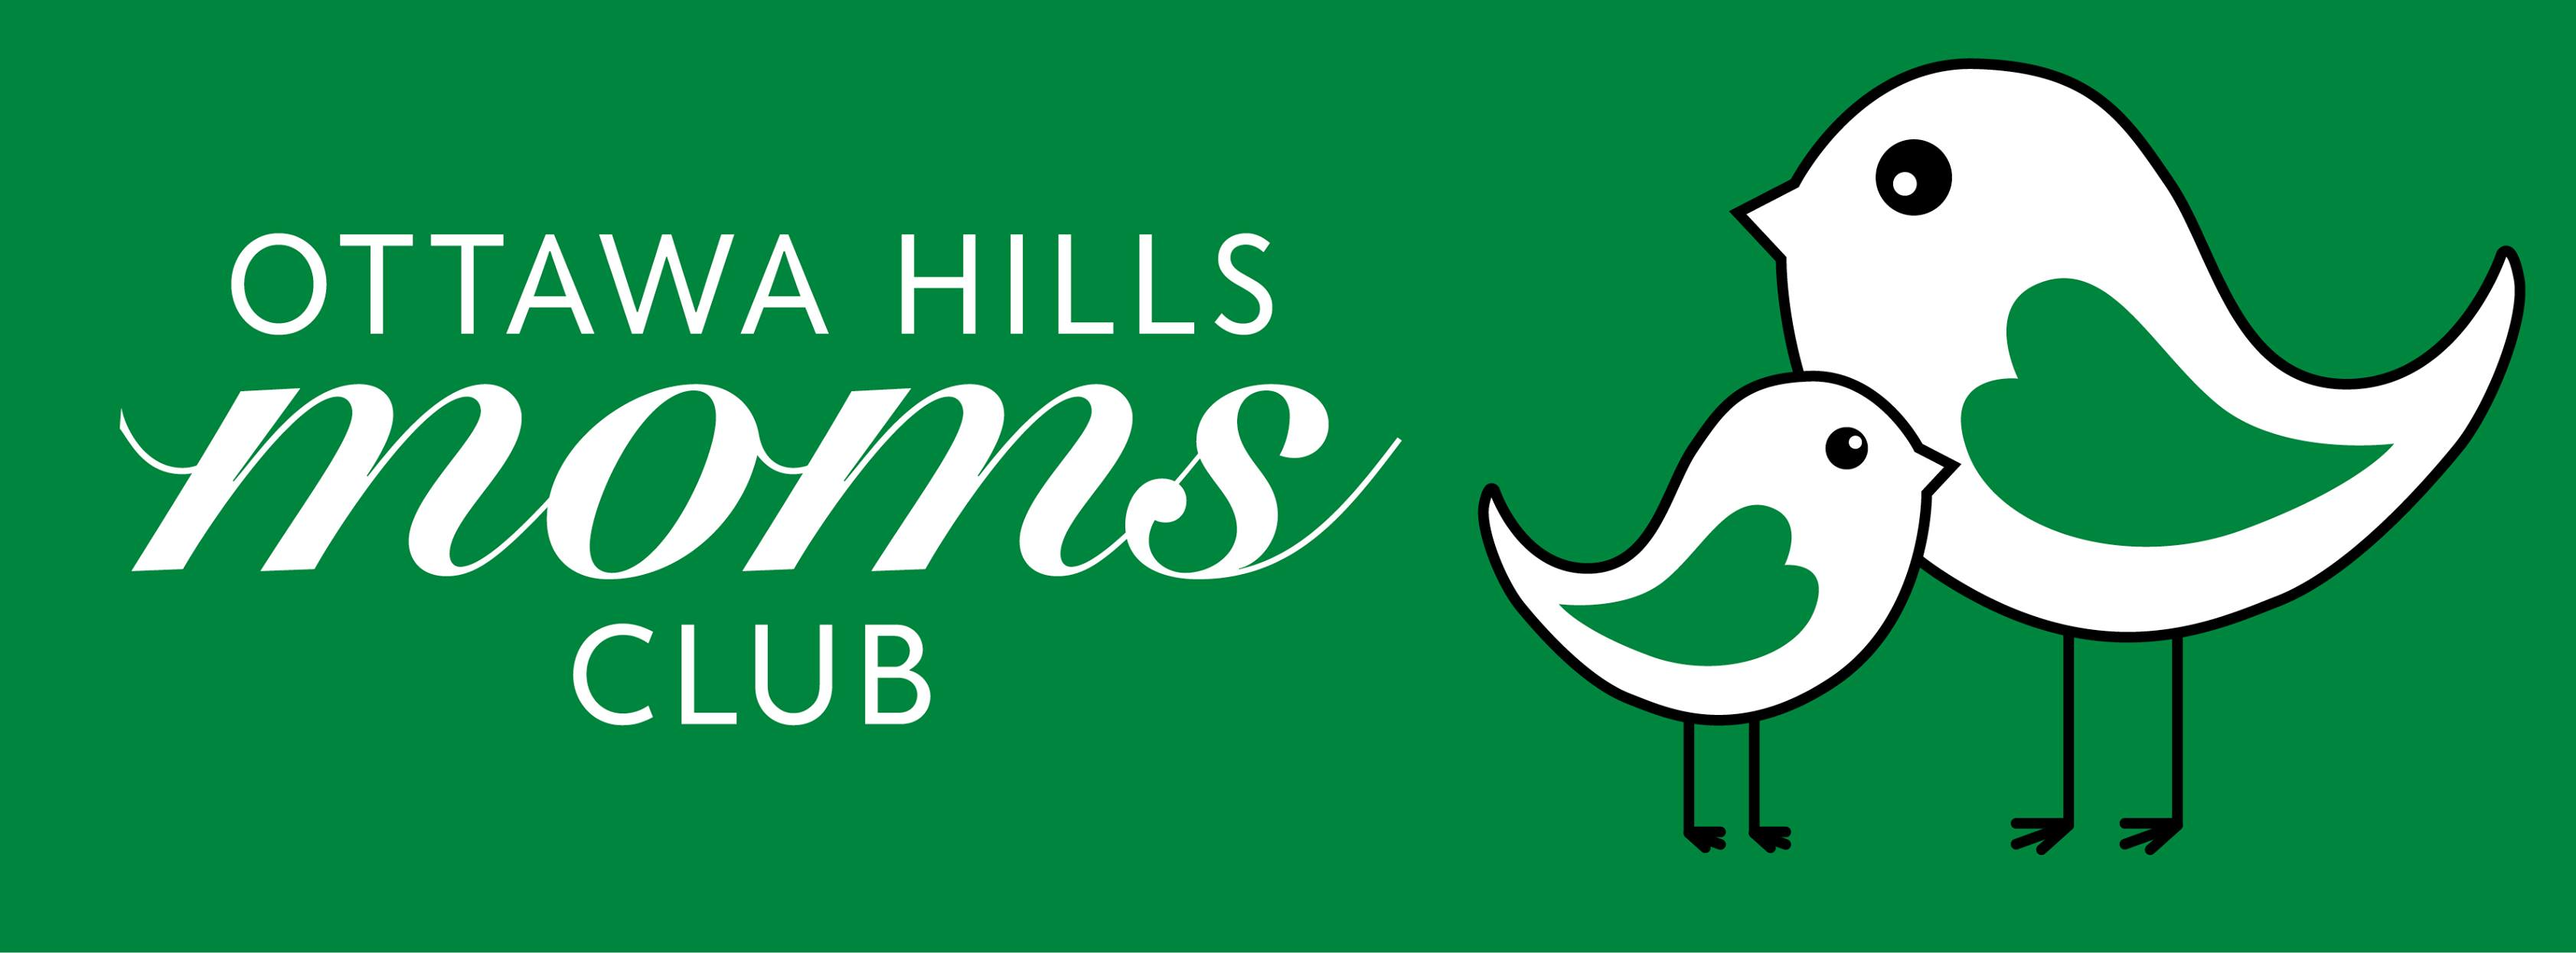 Ottawa Hills Moms Group logo